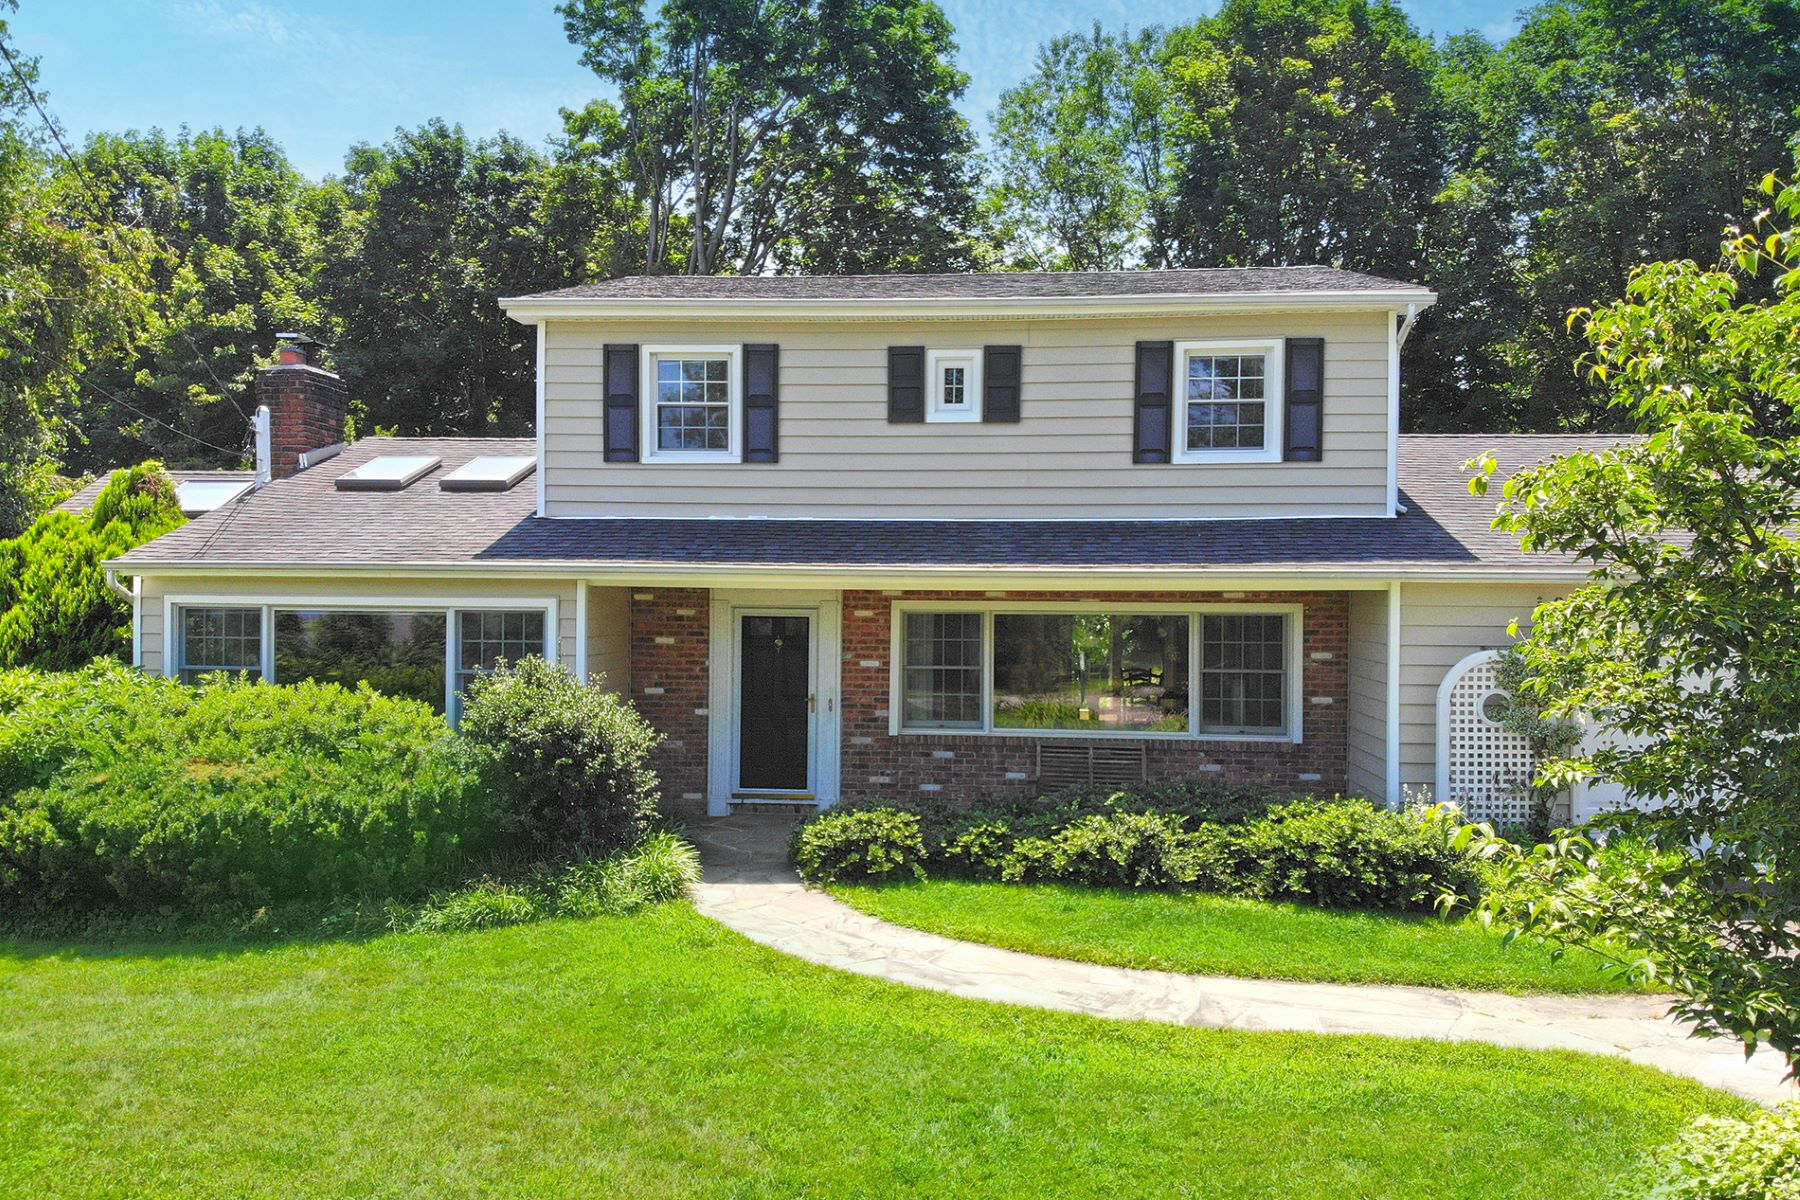 Single Family Homes for Active at Setauket 6 Indian Field Rd Setauket, New York 11733 United States